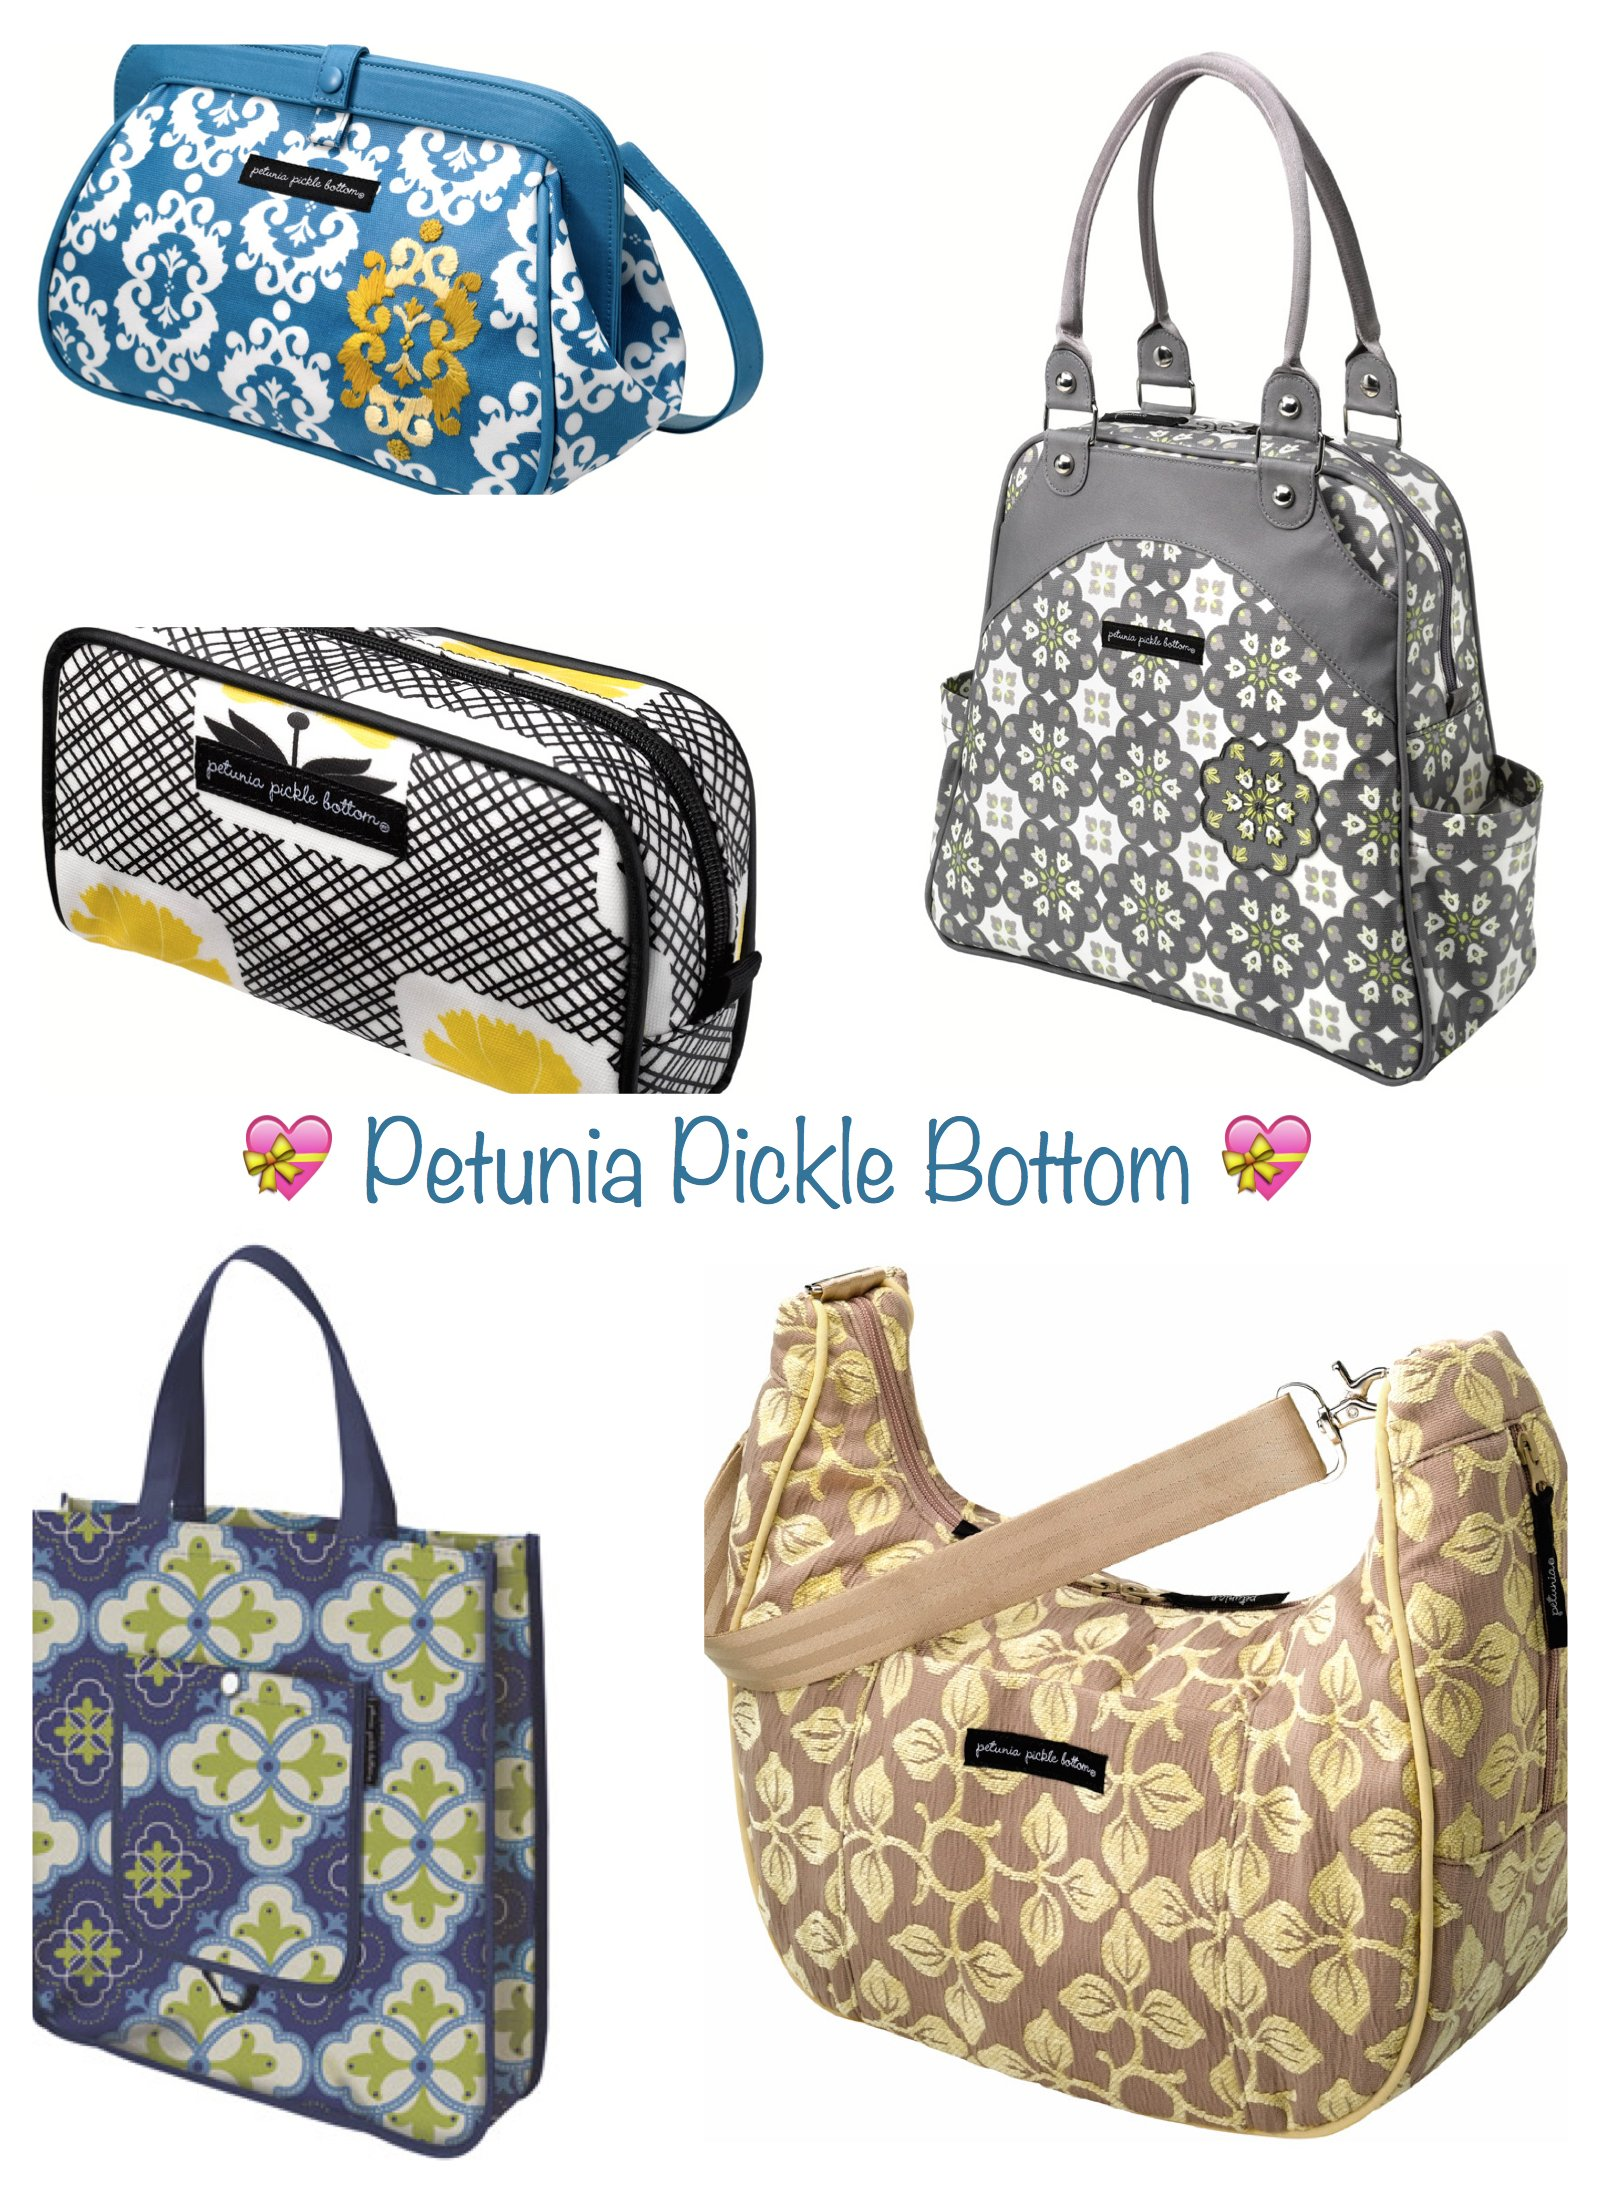 Petunia Pickle Bottom Baby Shower Gifts, Chic and Stylish Baby Shower Gifts